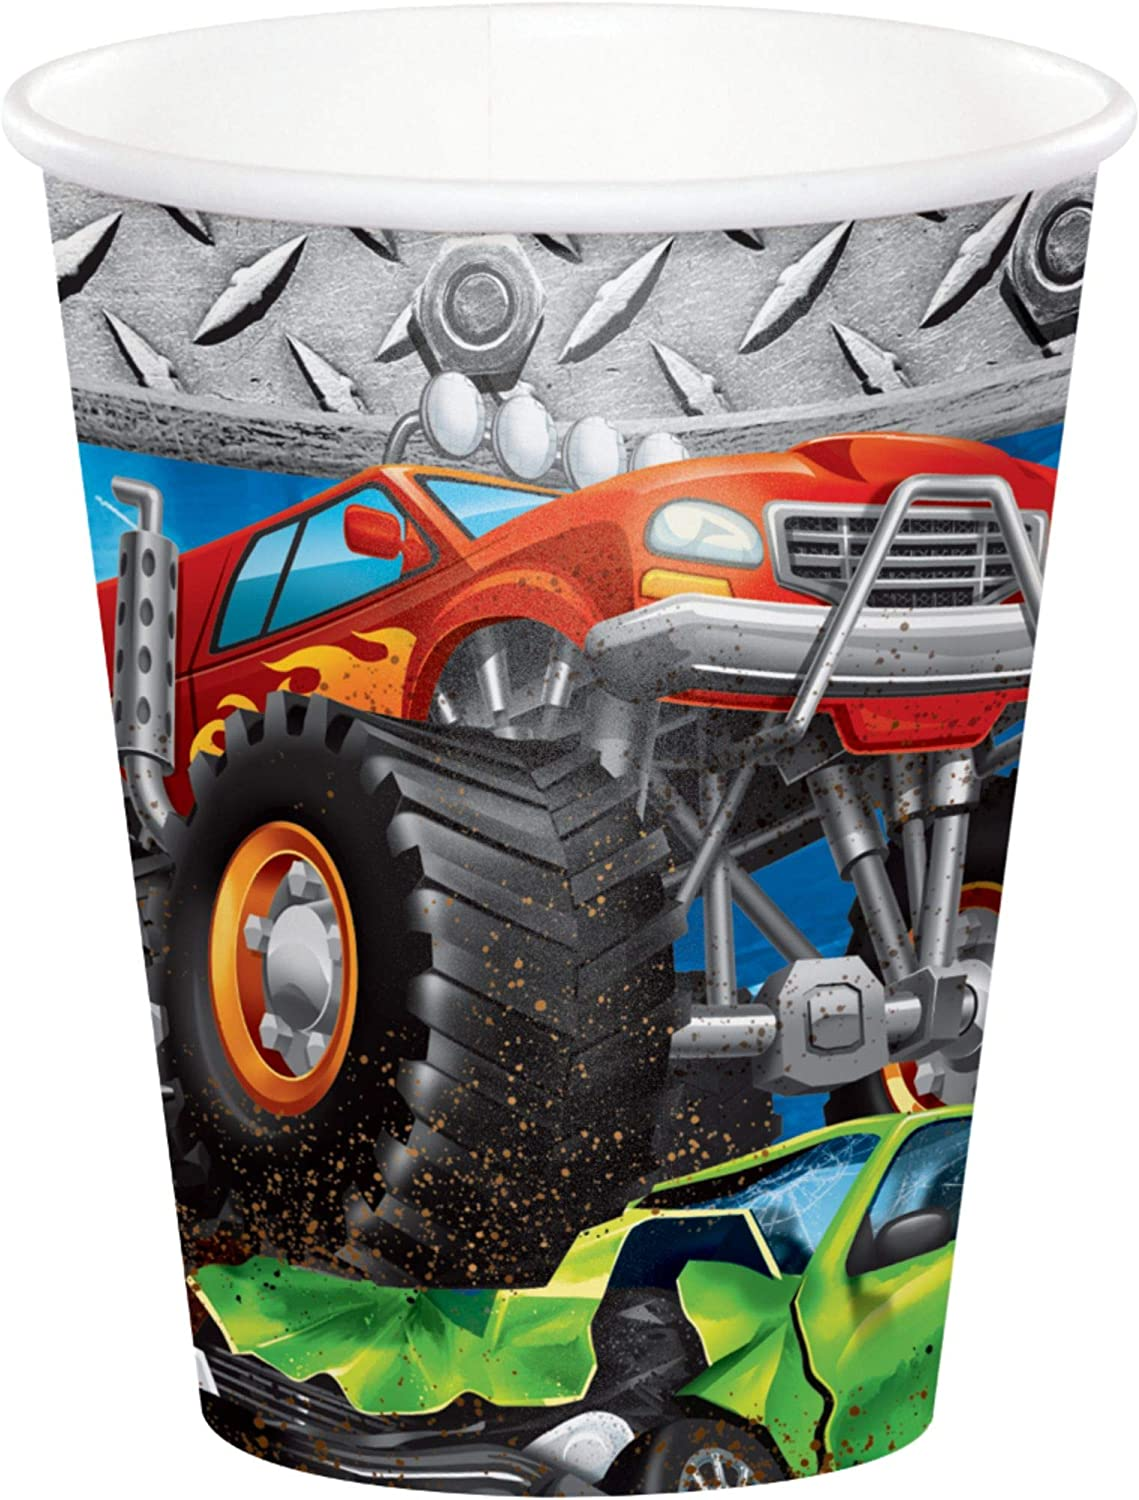 Club Beauty products Pack of 96 Orange and Black Monster Printed Rally Par Truck Superlatite